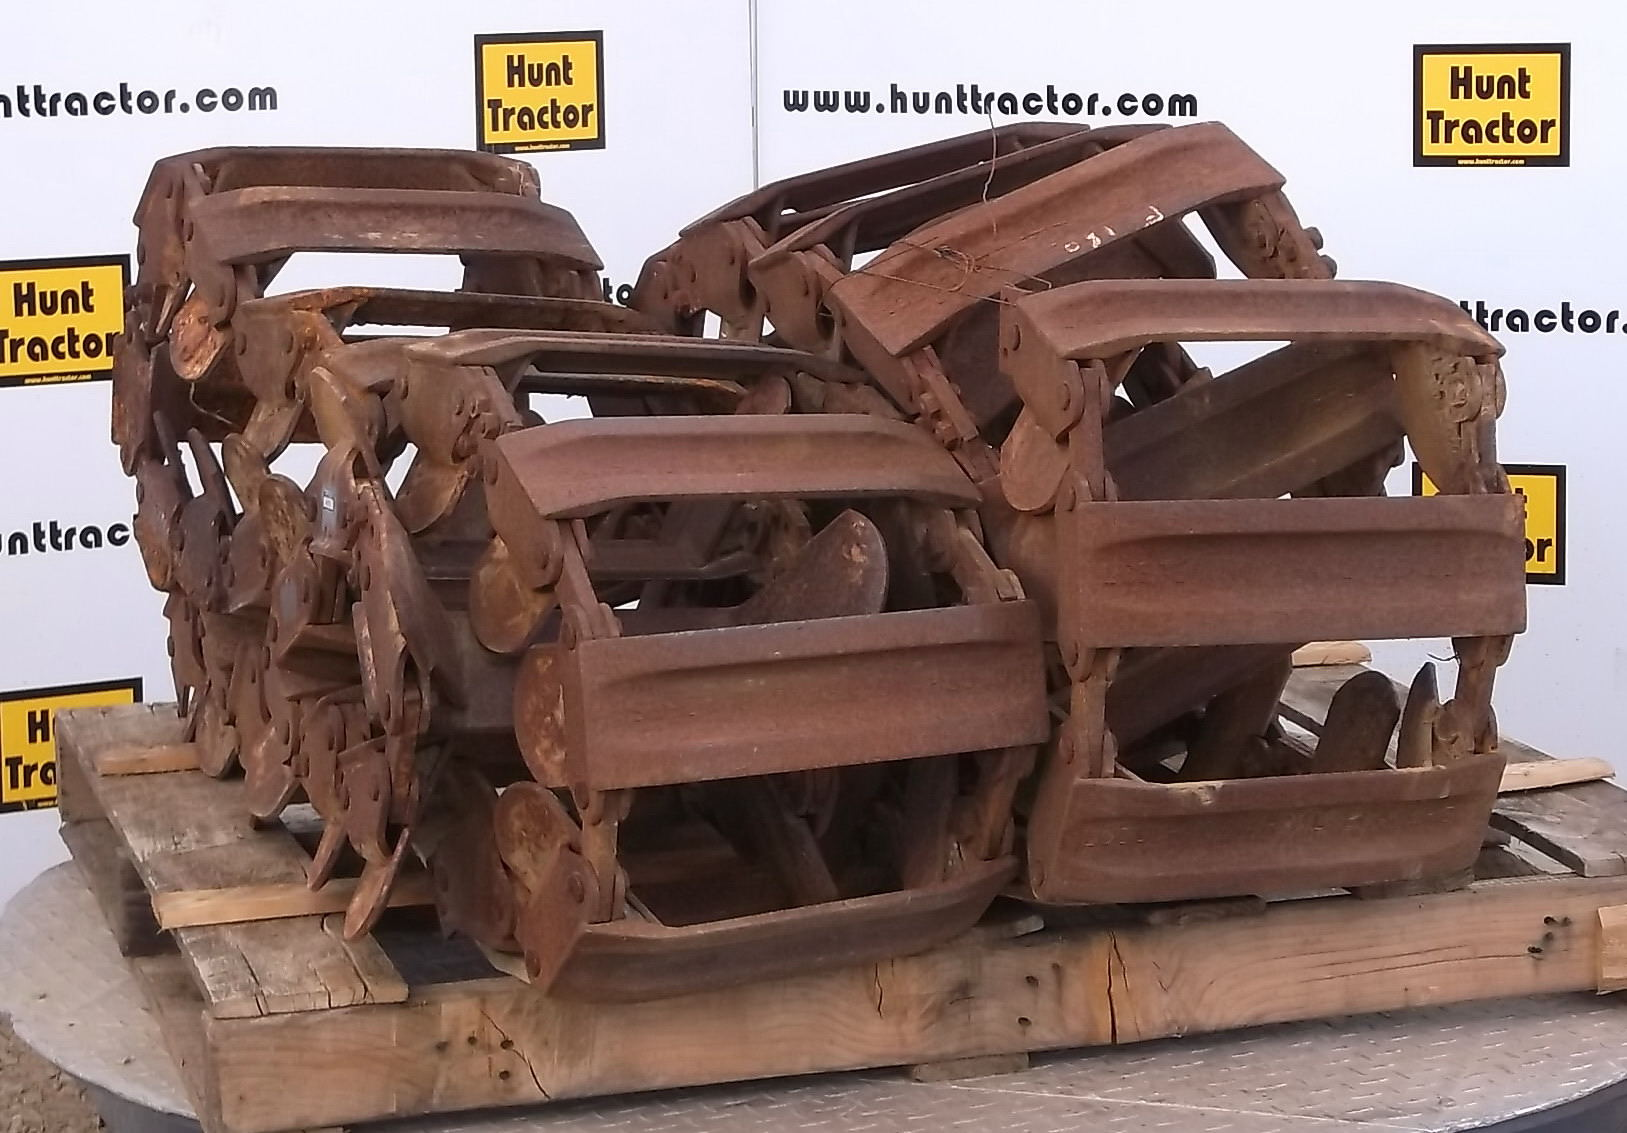 hunt tractor used 10 16 5 over the tire track for sale. Black Bedroom Furniture Sets. Home Design Ideas